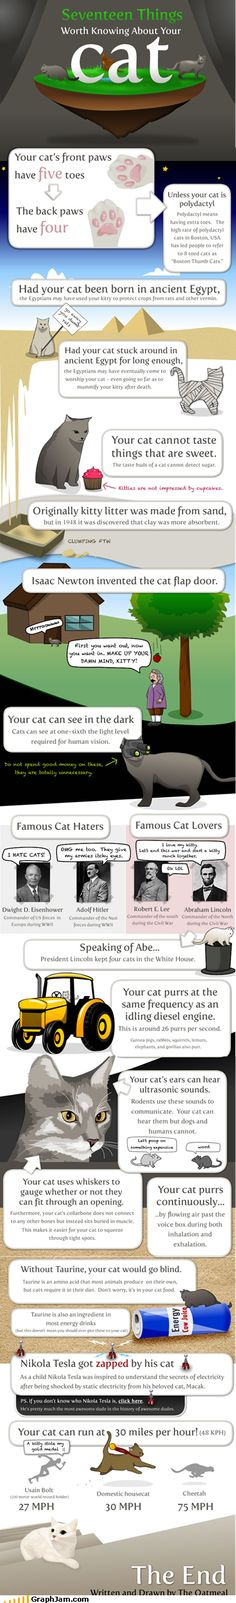 Cat facts. #cat #humor #cats #funny #lolcats #humour #meme #cute #quotes =^..^= www.zazzle.com/kittyprettygifts